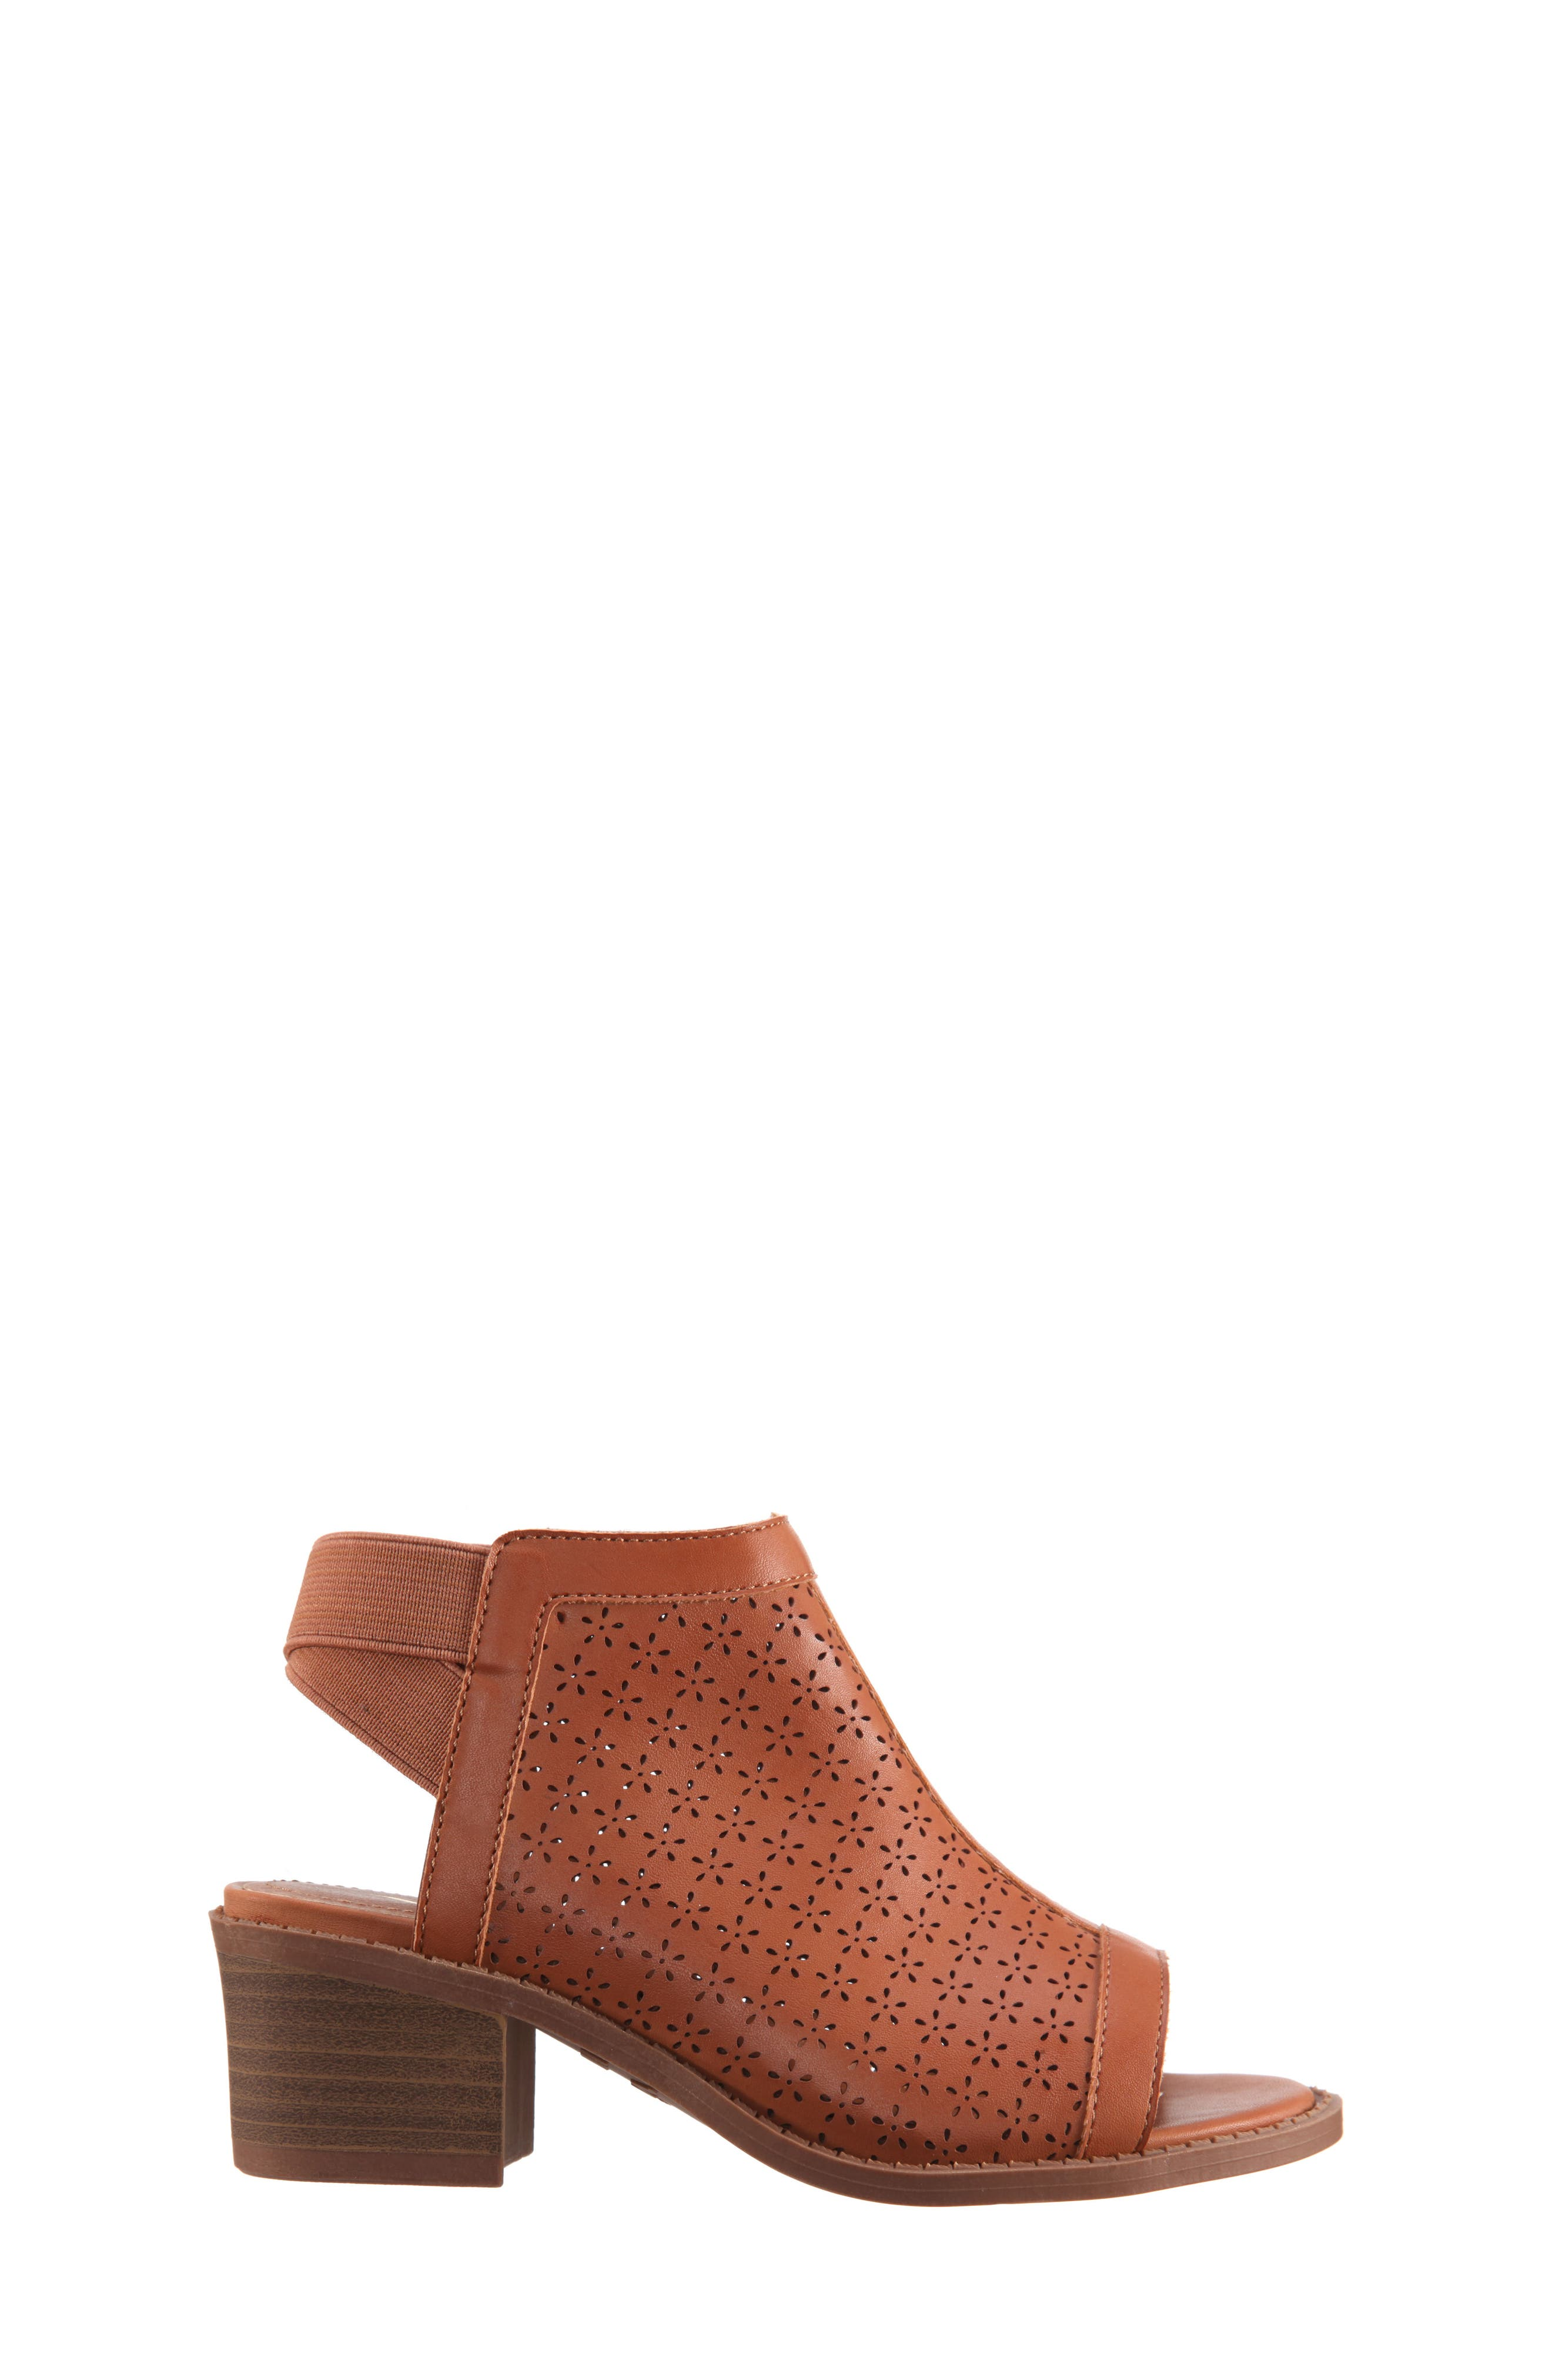 Maya Perforated Peep Toe Bootie,                             Alternate thumbnail 3, color,                             Tan Burnished